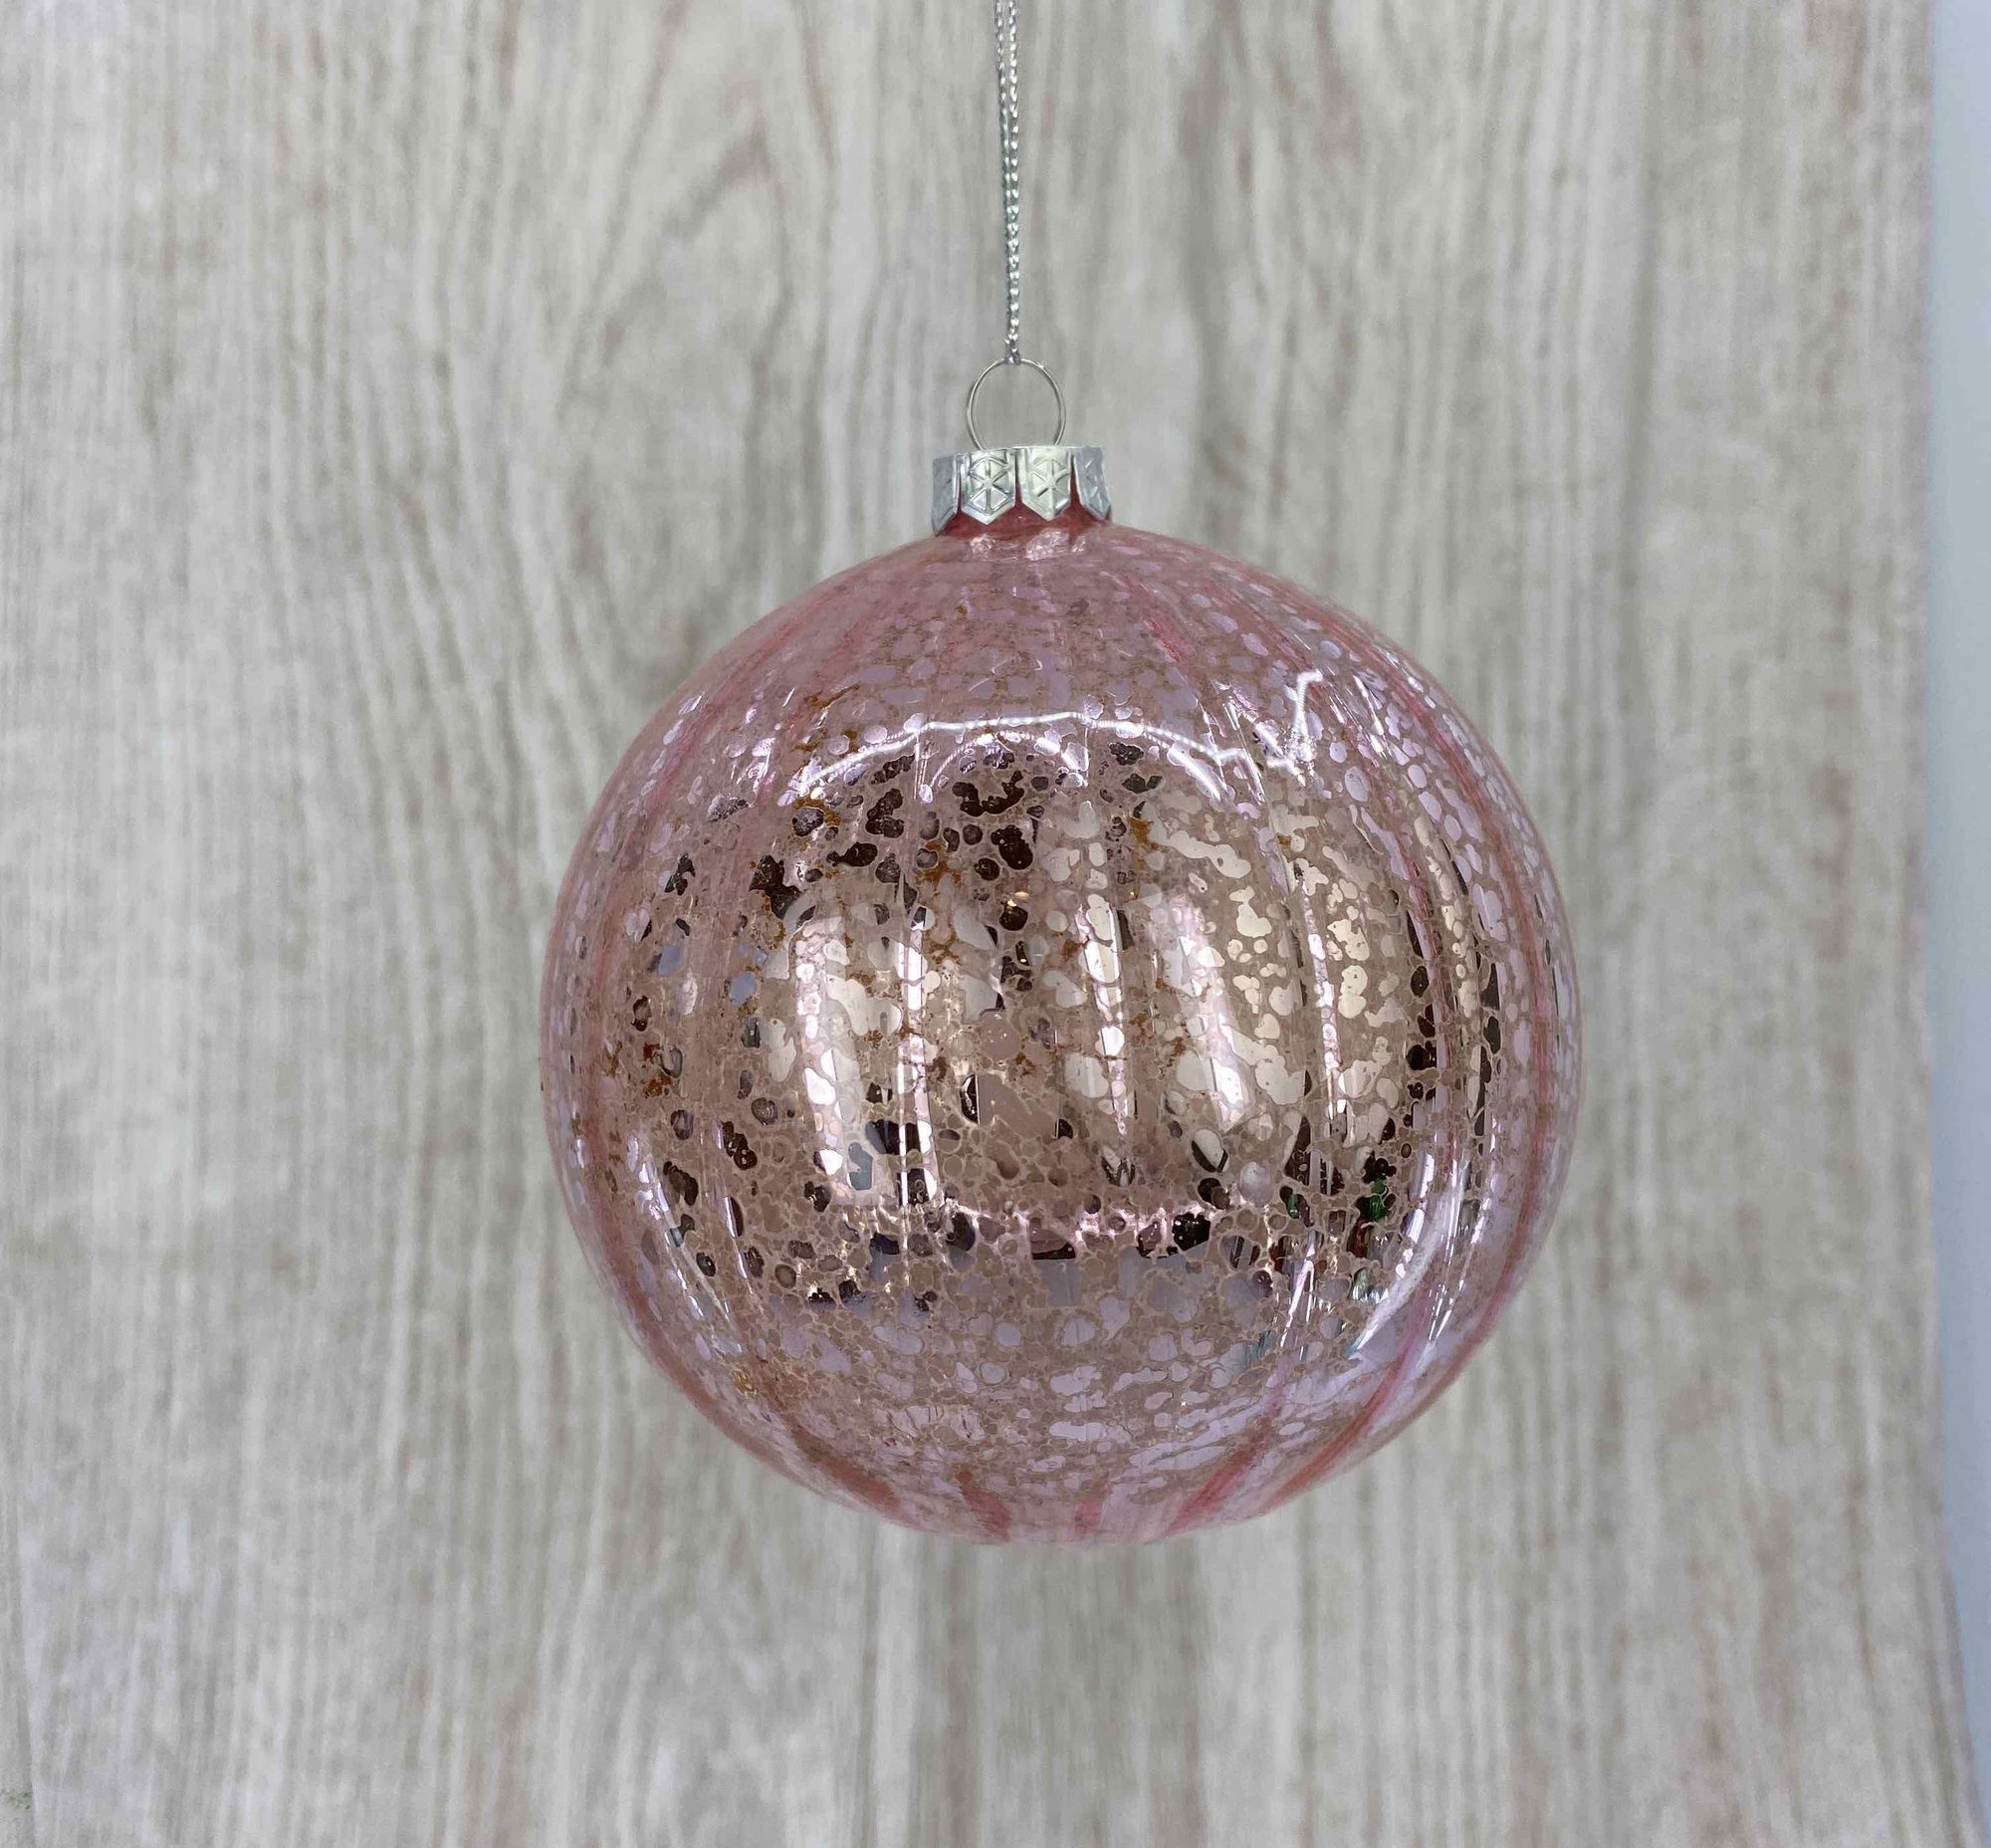 Mercury Pink Ball - My Christmas